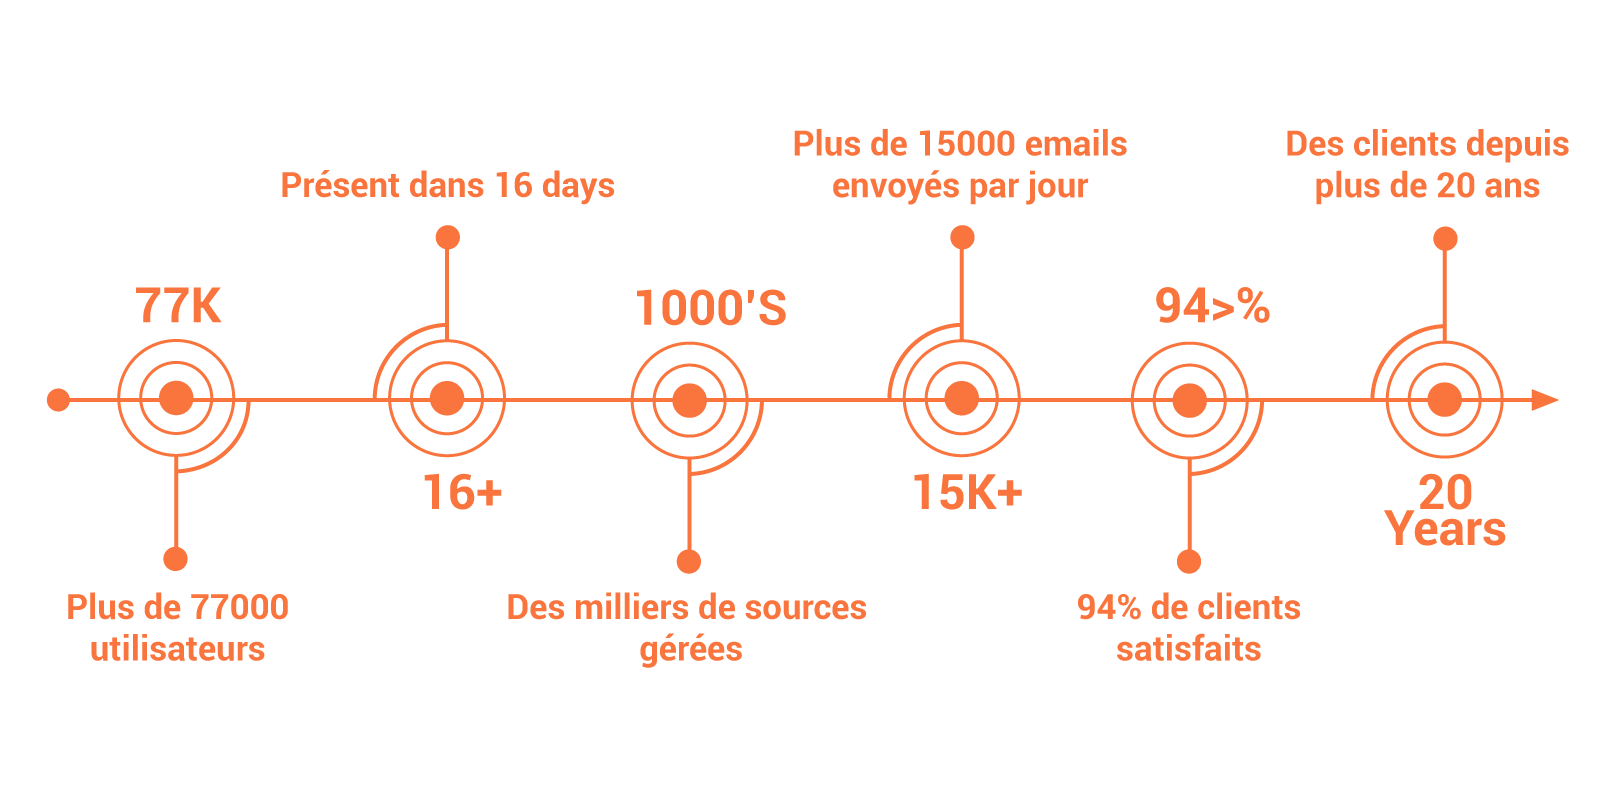 Infographic_2_french_Without_BG